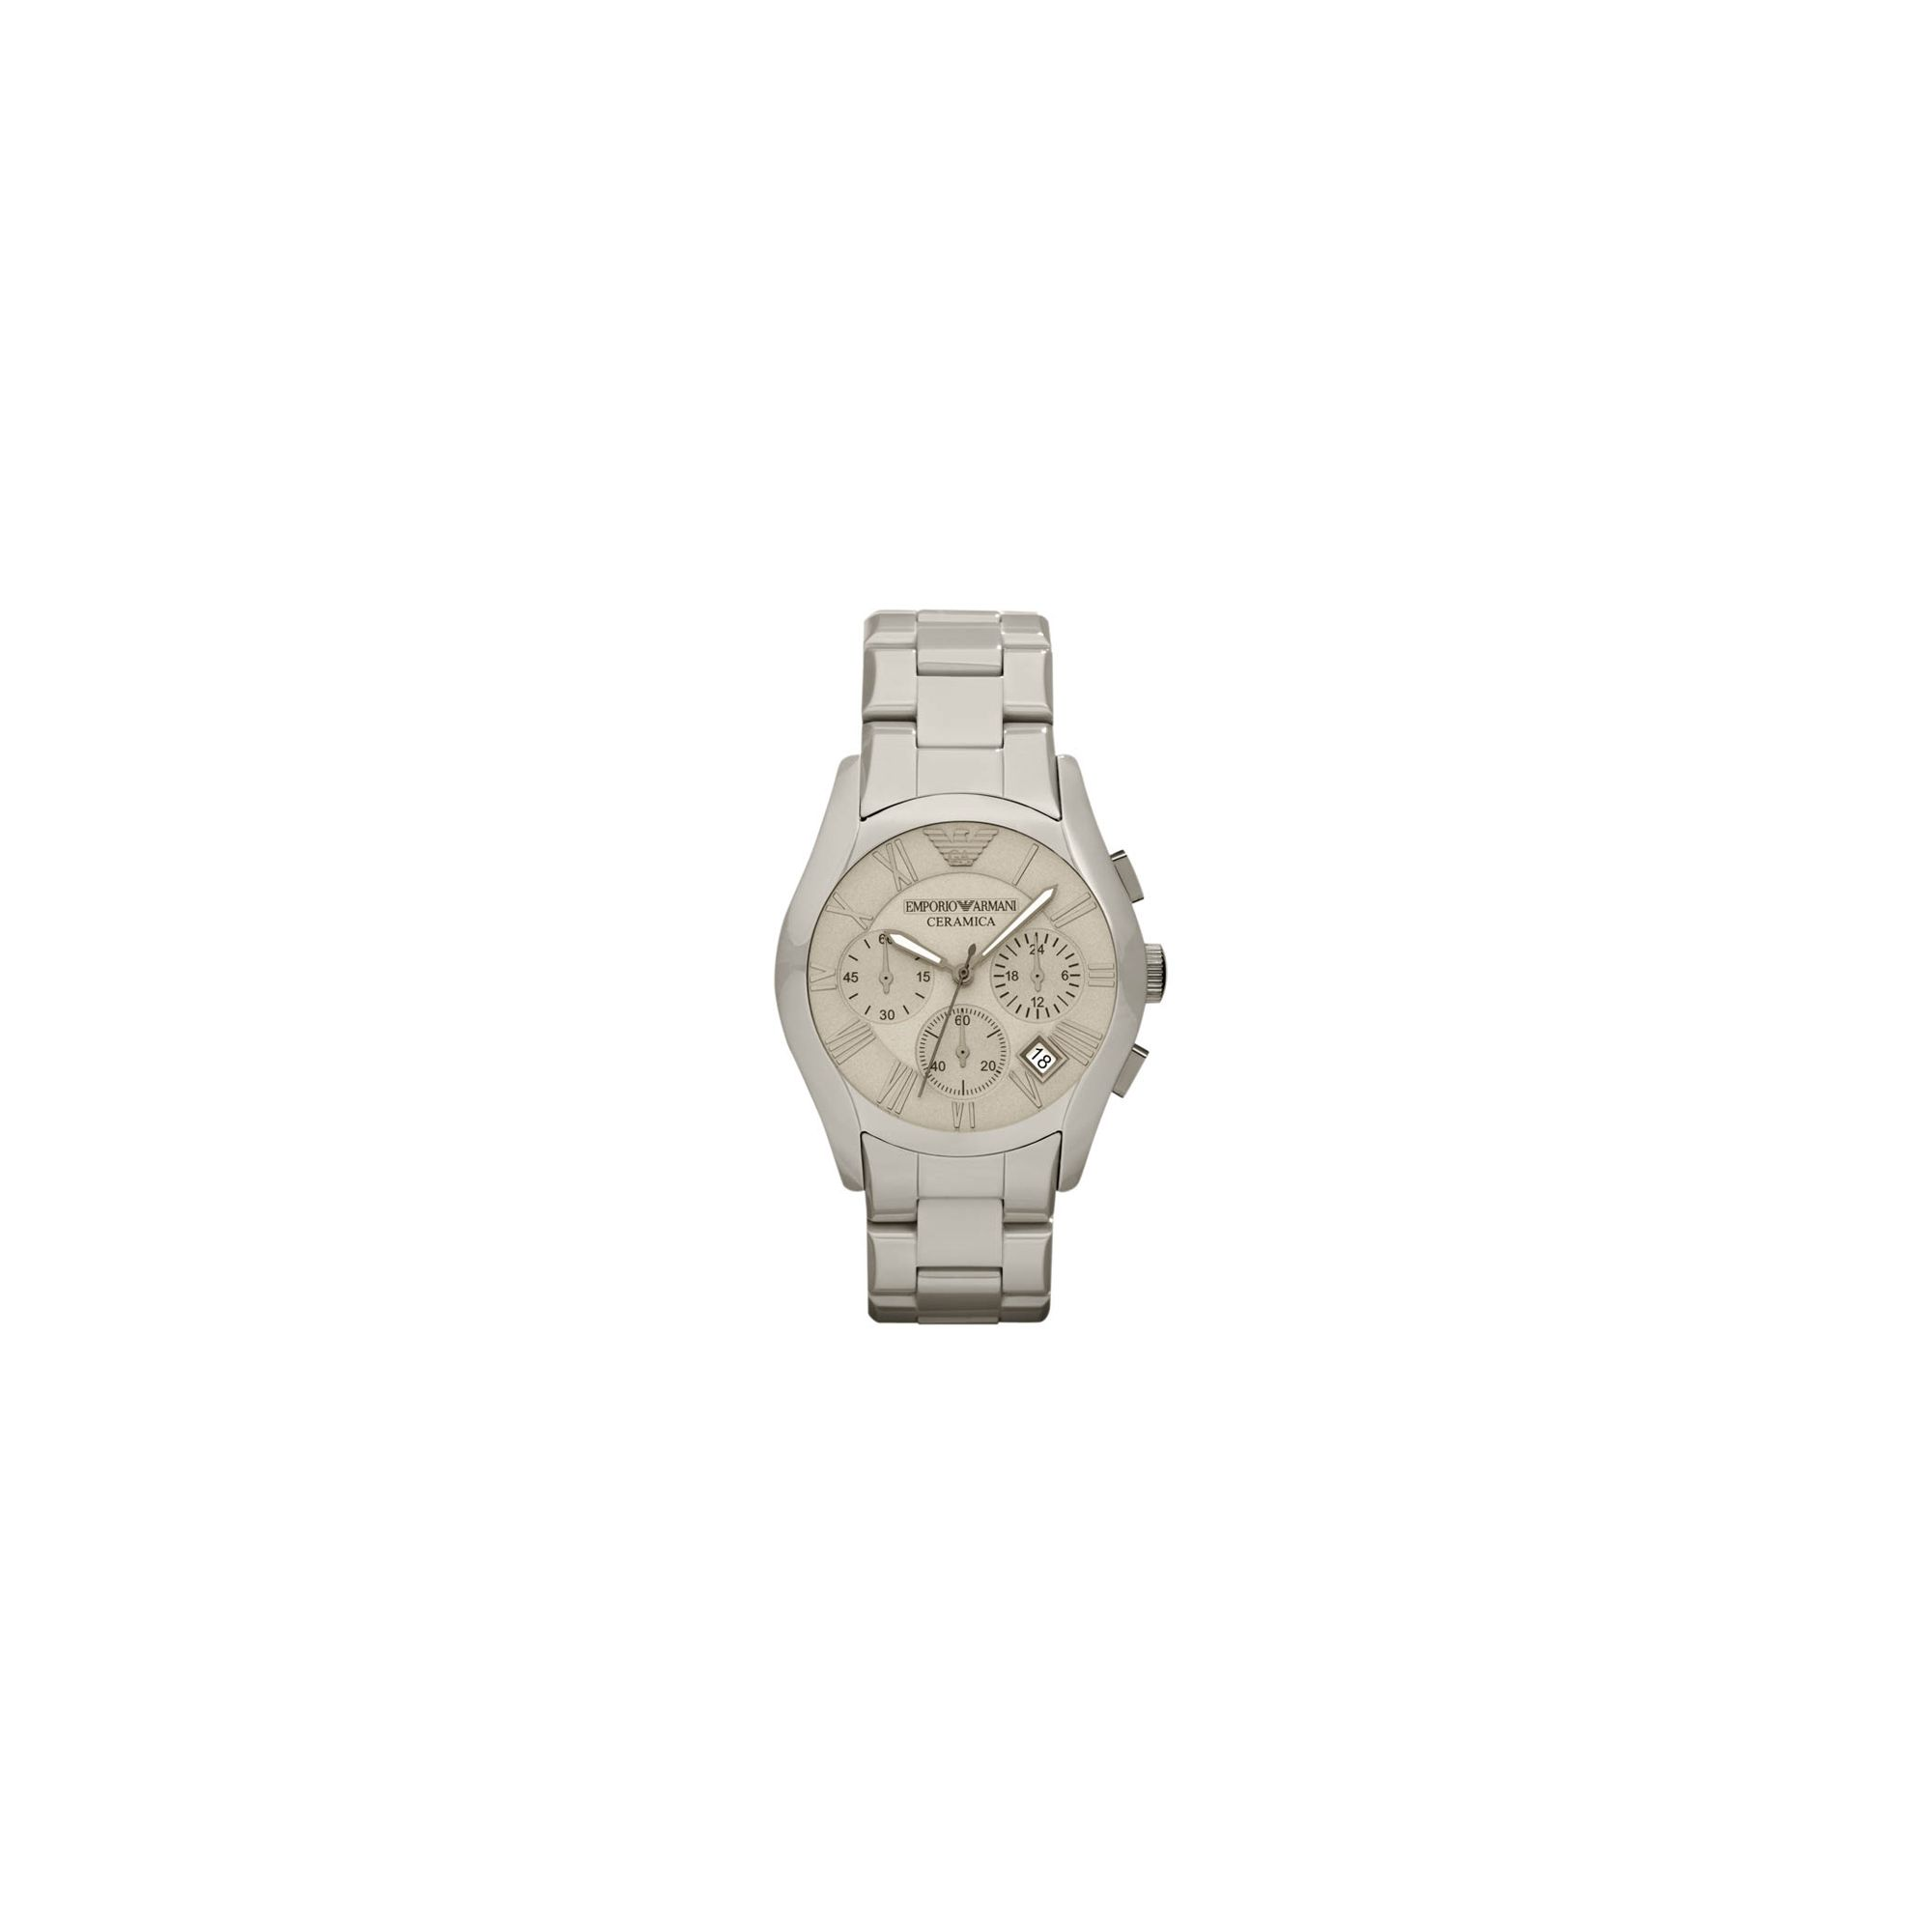 Emporio Armani Gents Cream Bracelet Watch AR1459 at Tesco Direct